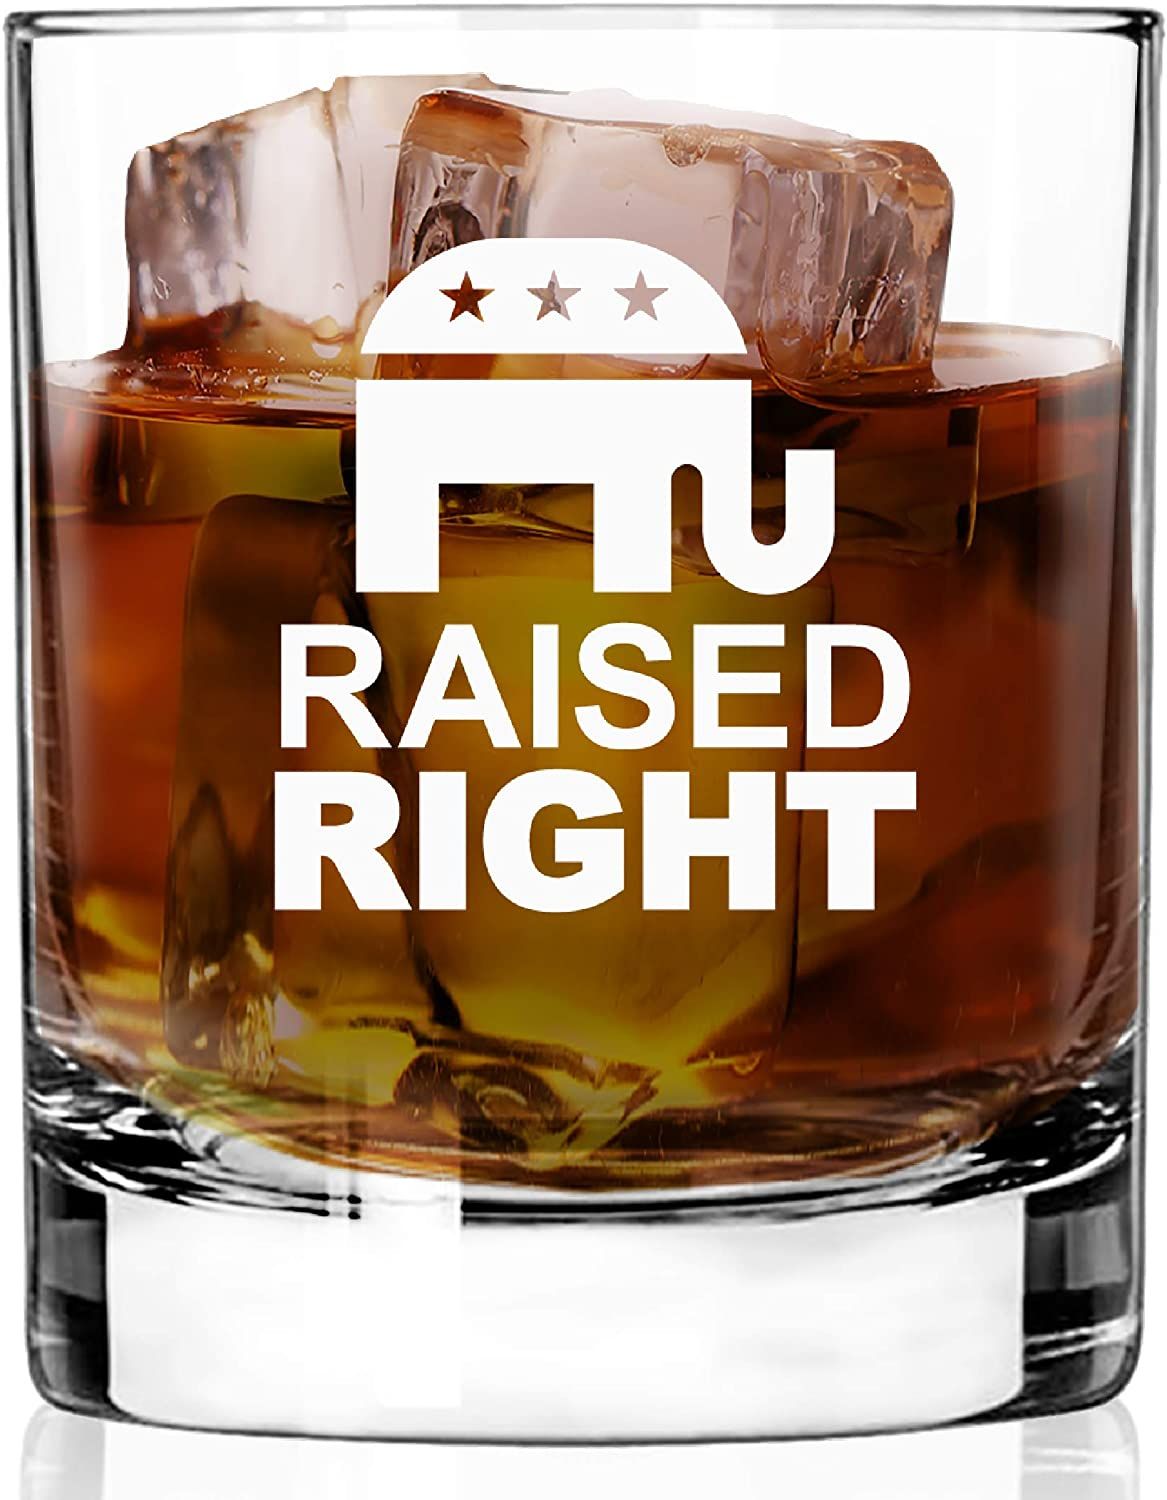 WHISKEY GLASS RAISED - RIGHT Super sale favorite period limited RESTAURANT CHIP QUALITY HEAVY